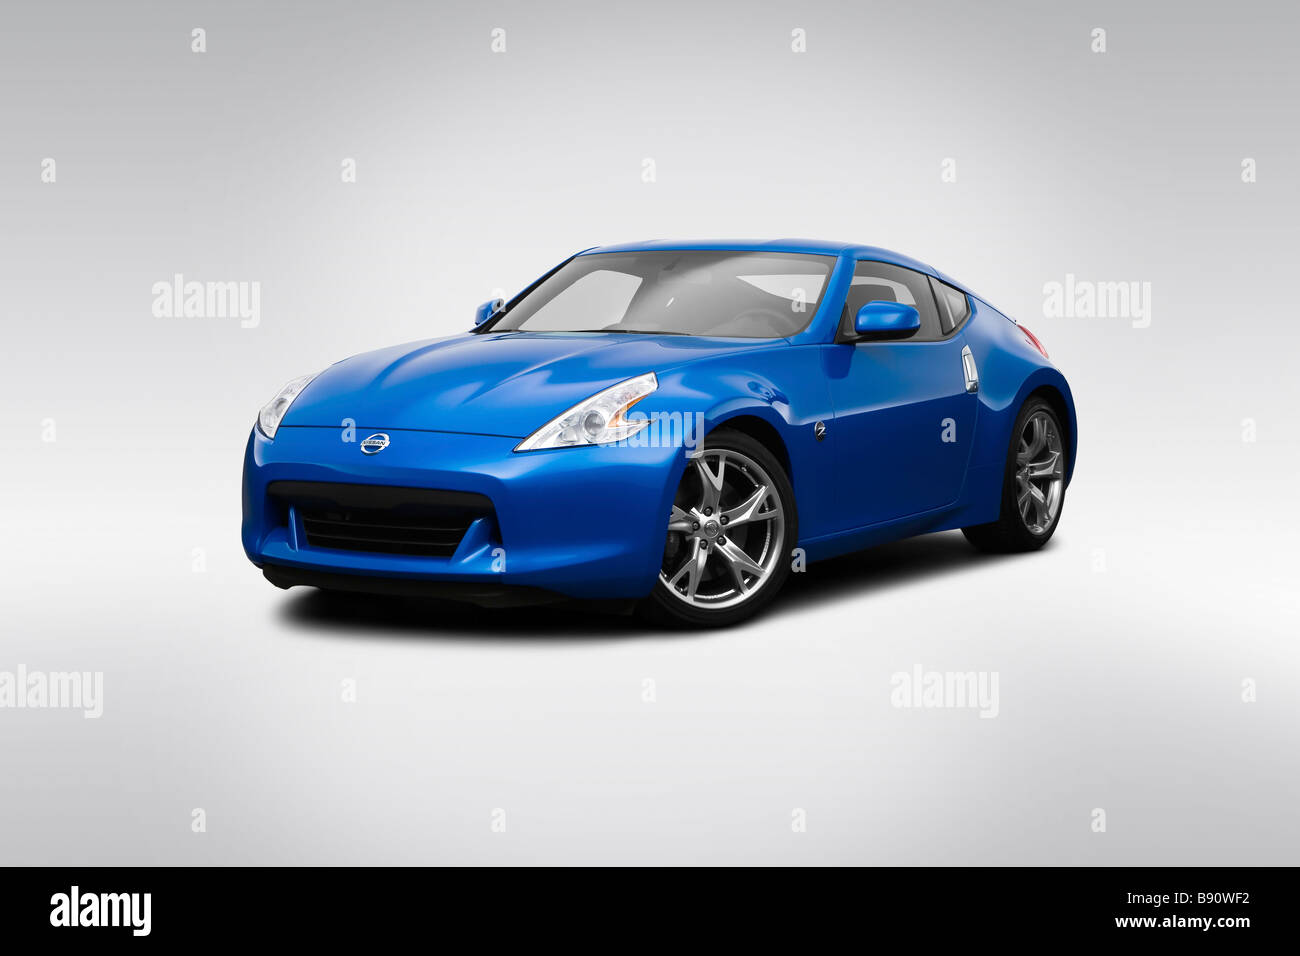 2009 Nissan 370Z SPORT 6MT In Blue   Front Angle View   Stock Image